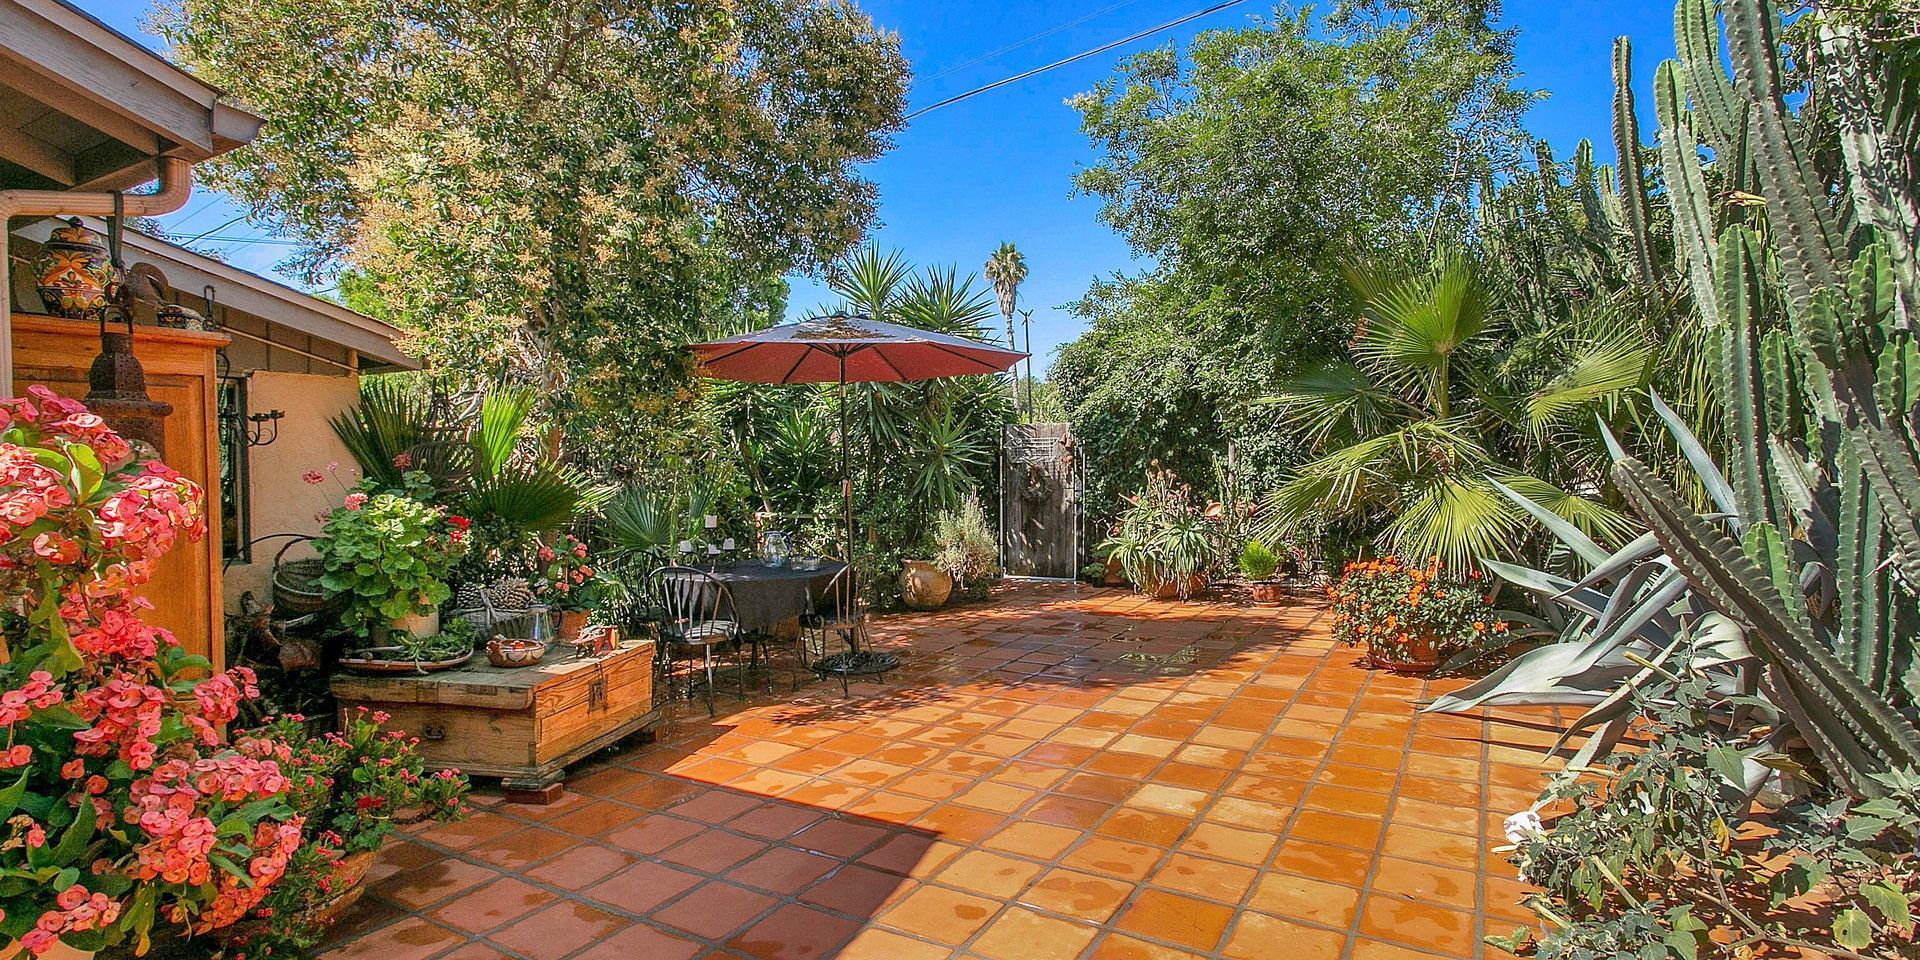 Coldwell Banker Residential Brokerage Lists the Former Escondido Property of the Historical Kleiser Family for $635,000